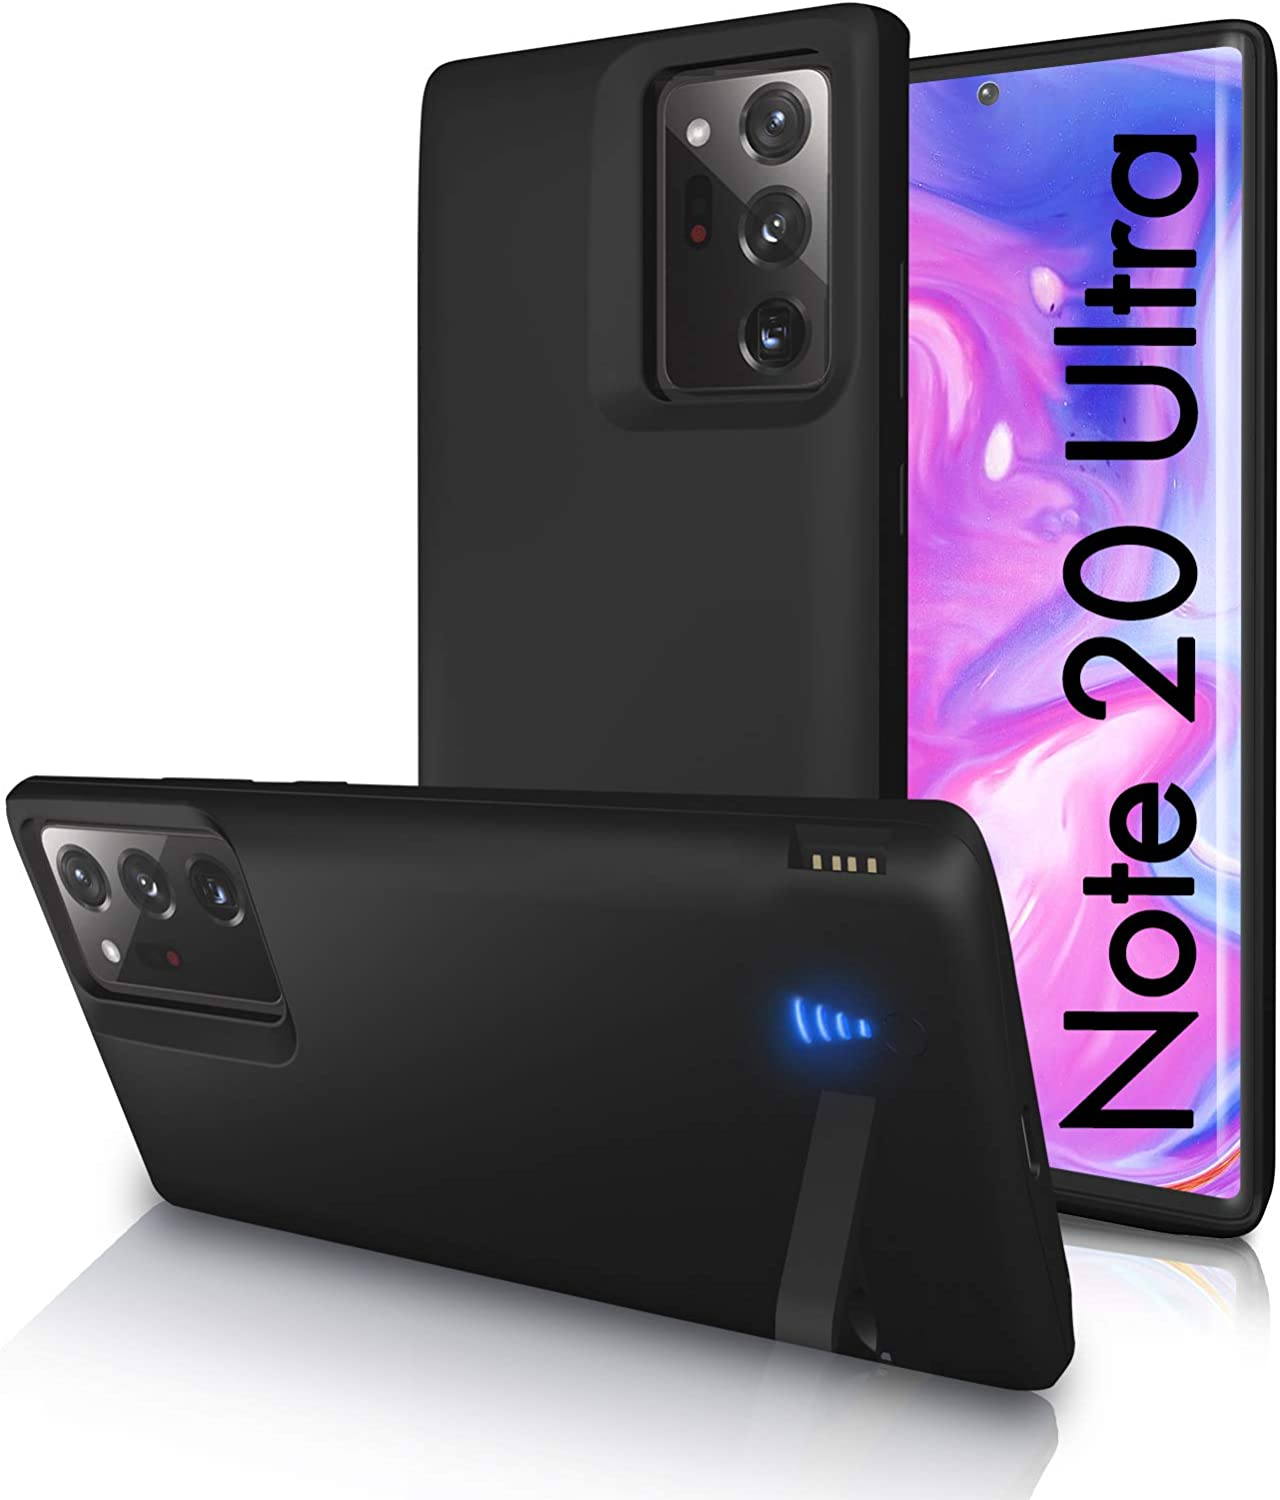 Black/… SlaBao Galaxy Note 20 Ultra Battery Case Pass-Through Charging Case with Kickstand /& USB 6000mAh Portable Backup Charger Case for Samsung Note 20 Ultra 5g Upgraded